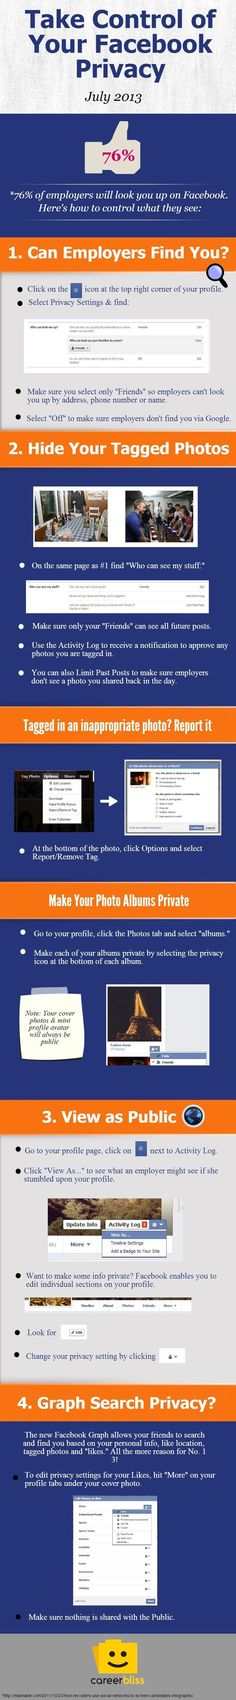 Take Control of Your #Facebook Privacy #infographic